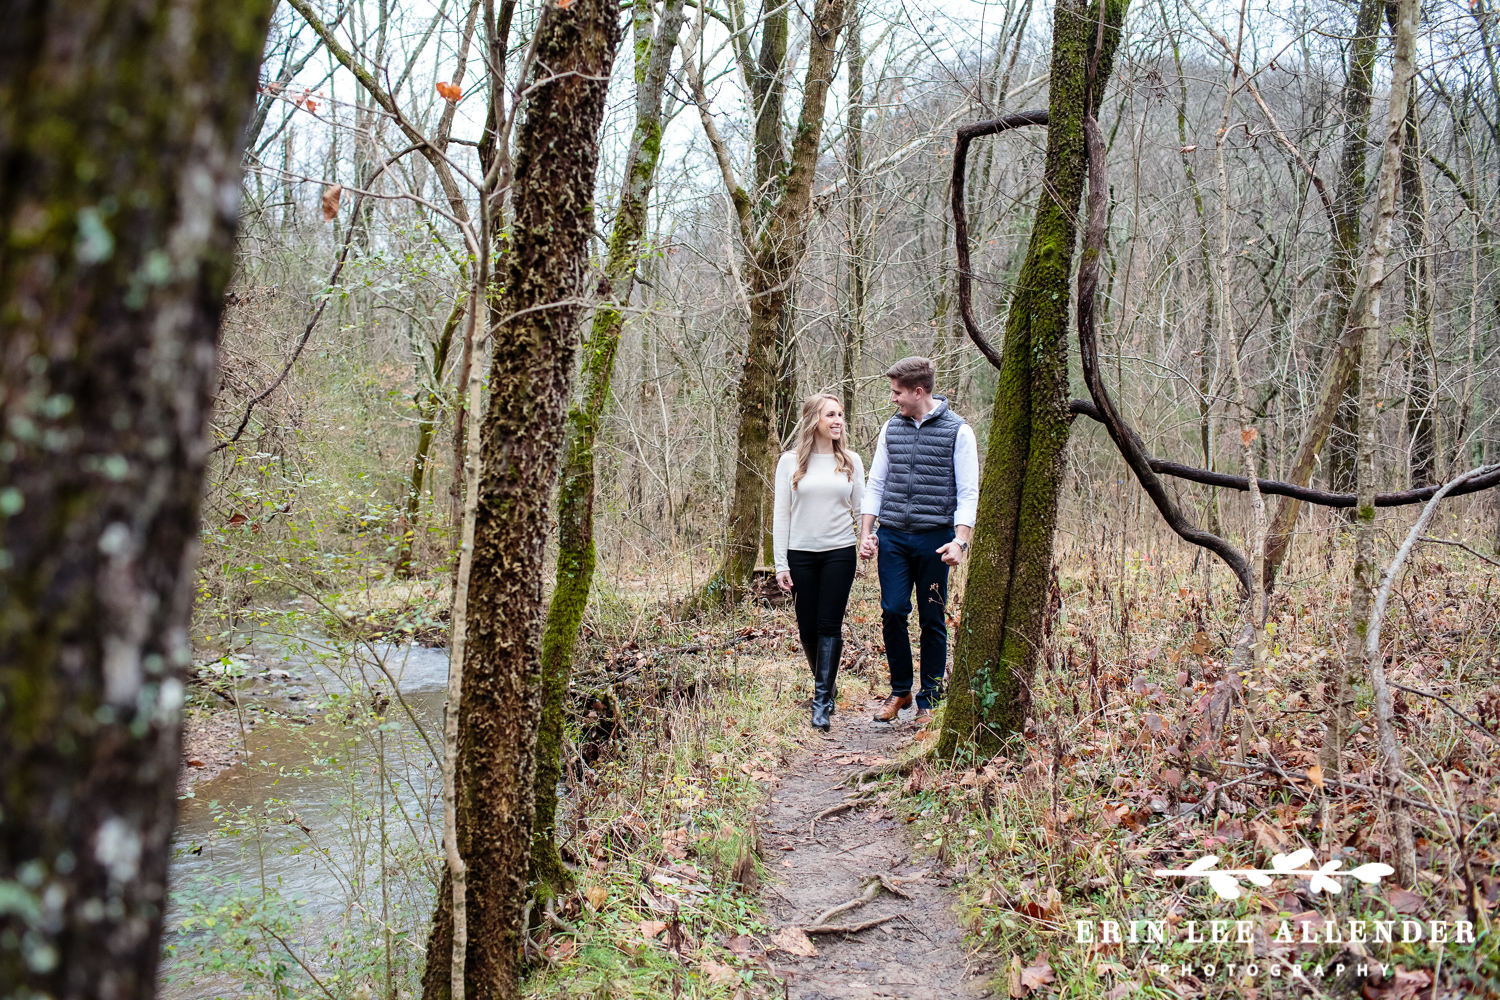 Couple_Walking_In_the_woods